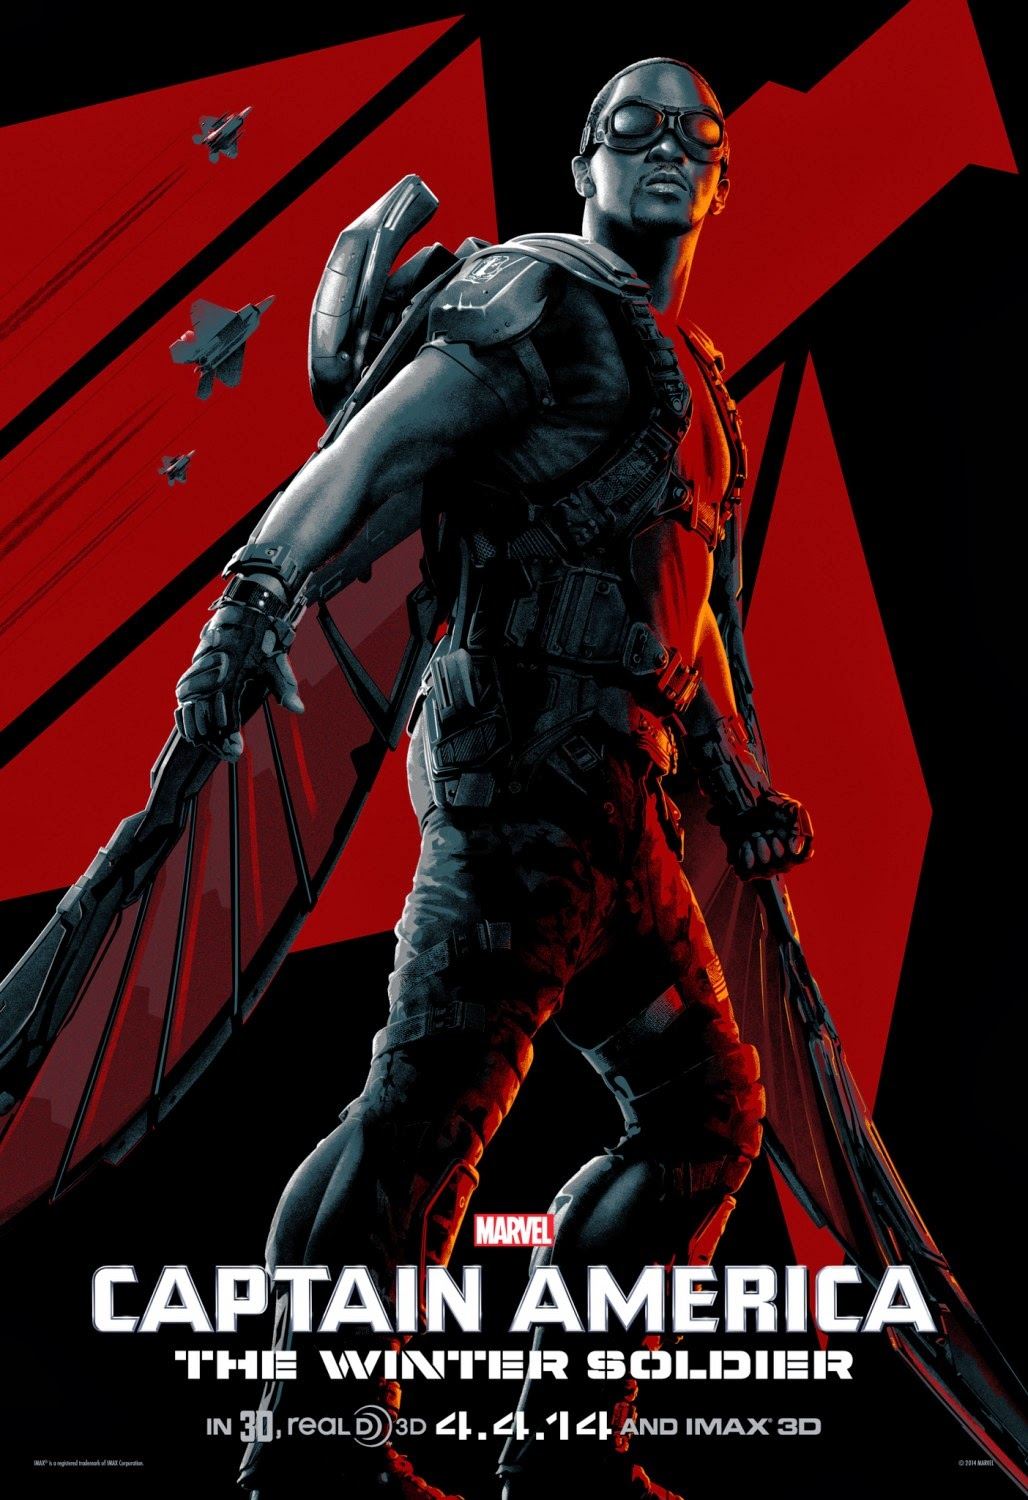 Captain America The Winter Soldier IMAX Character One Sheet Movie Poster Set - Anthony Mackie as The Falcon